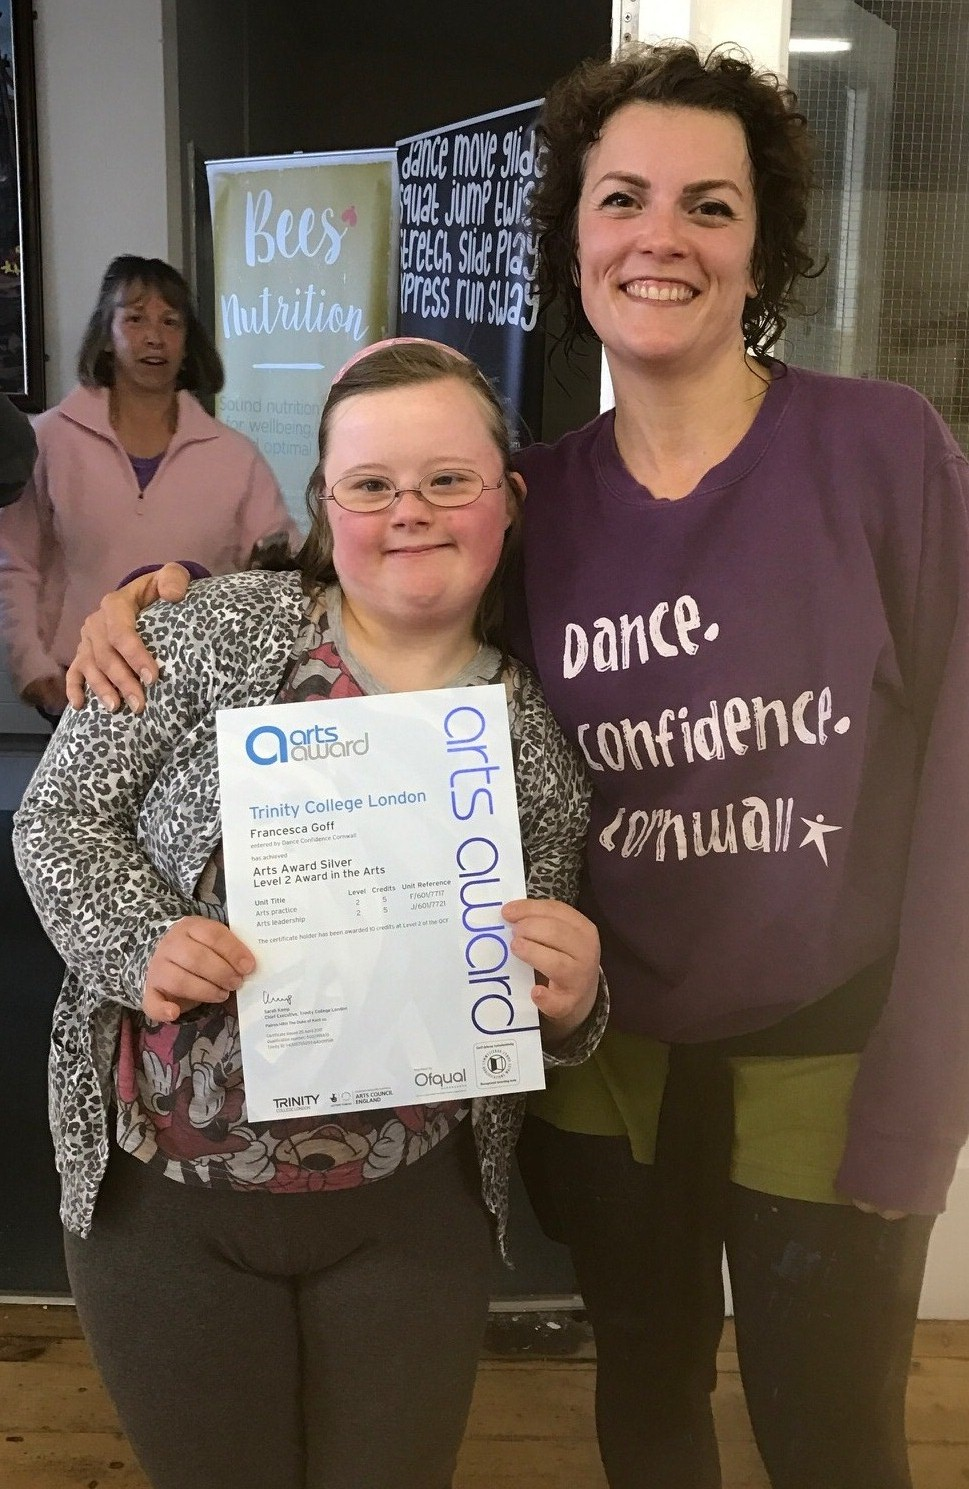 Francesca receiving her award with by Becci Gowers from Dance confidence Cornwall